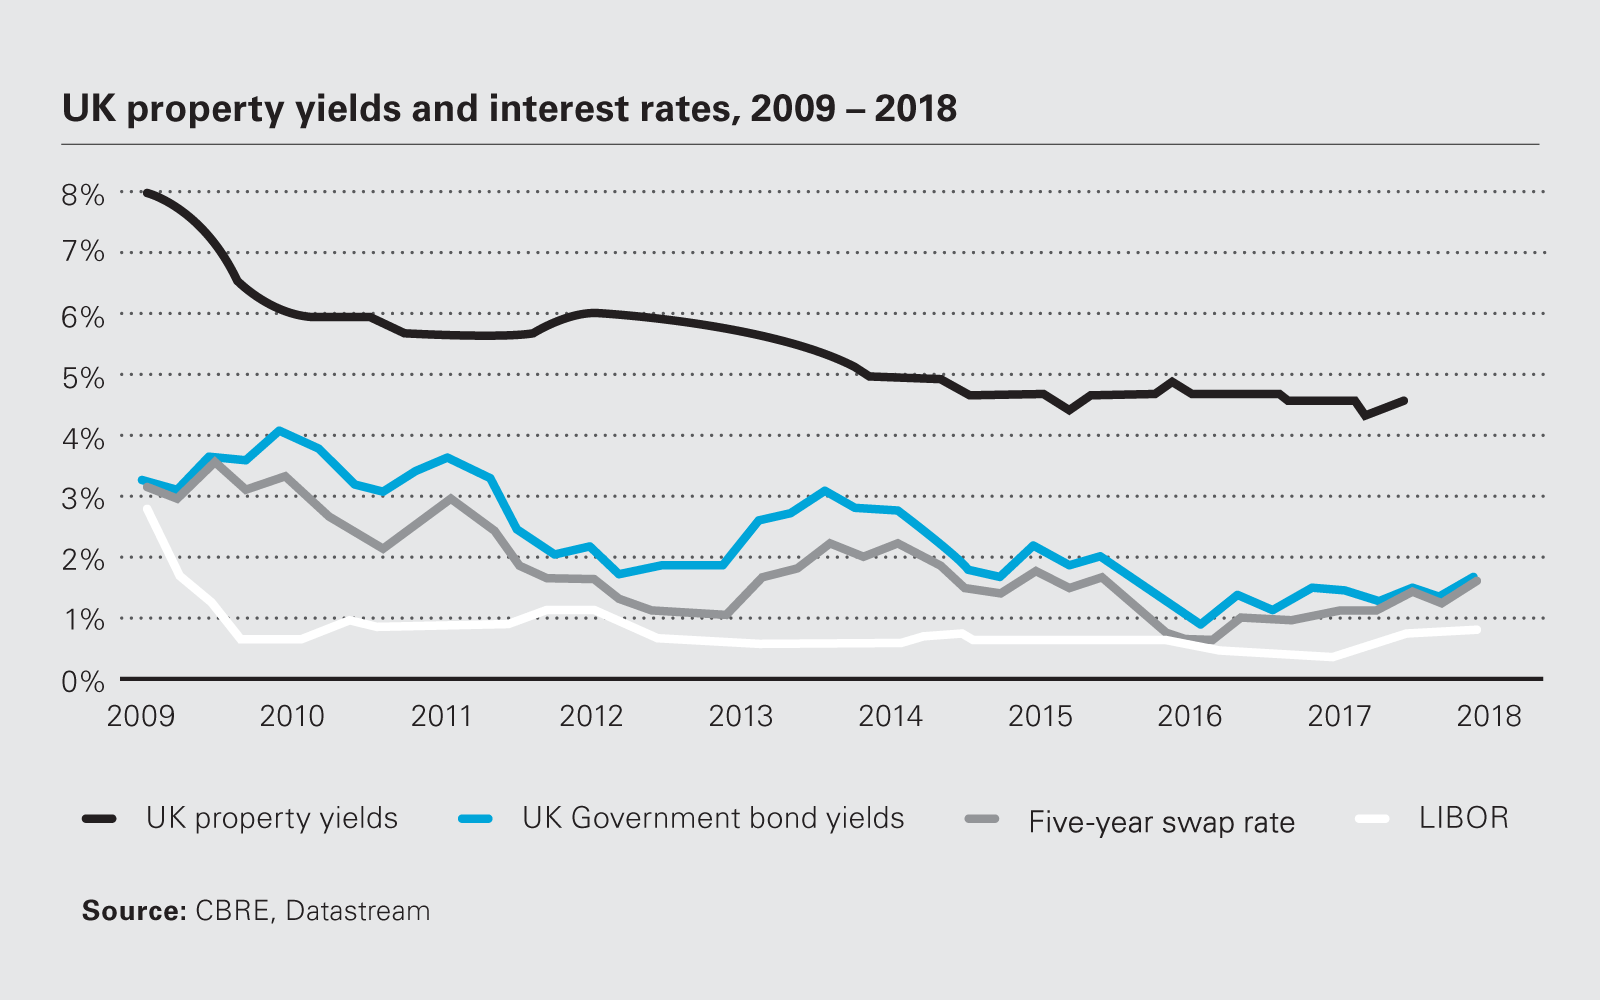 UK property yields and interest rates, 2009-2018